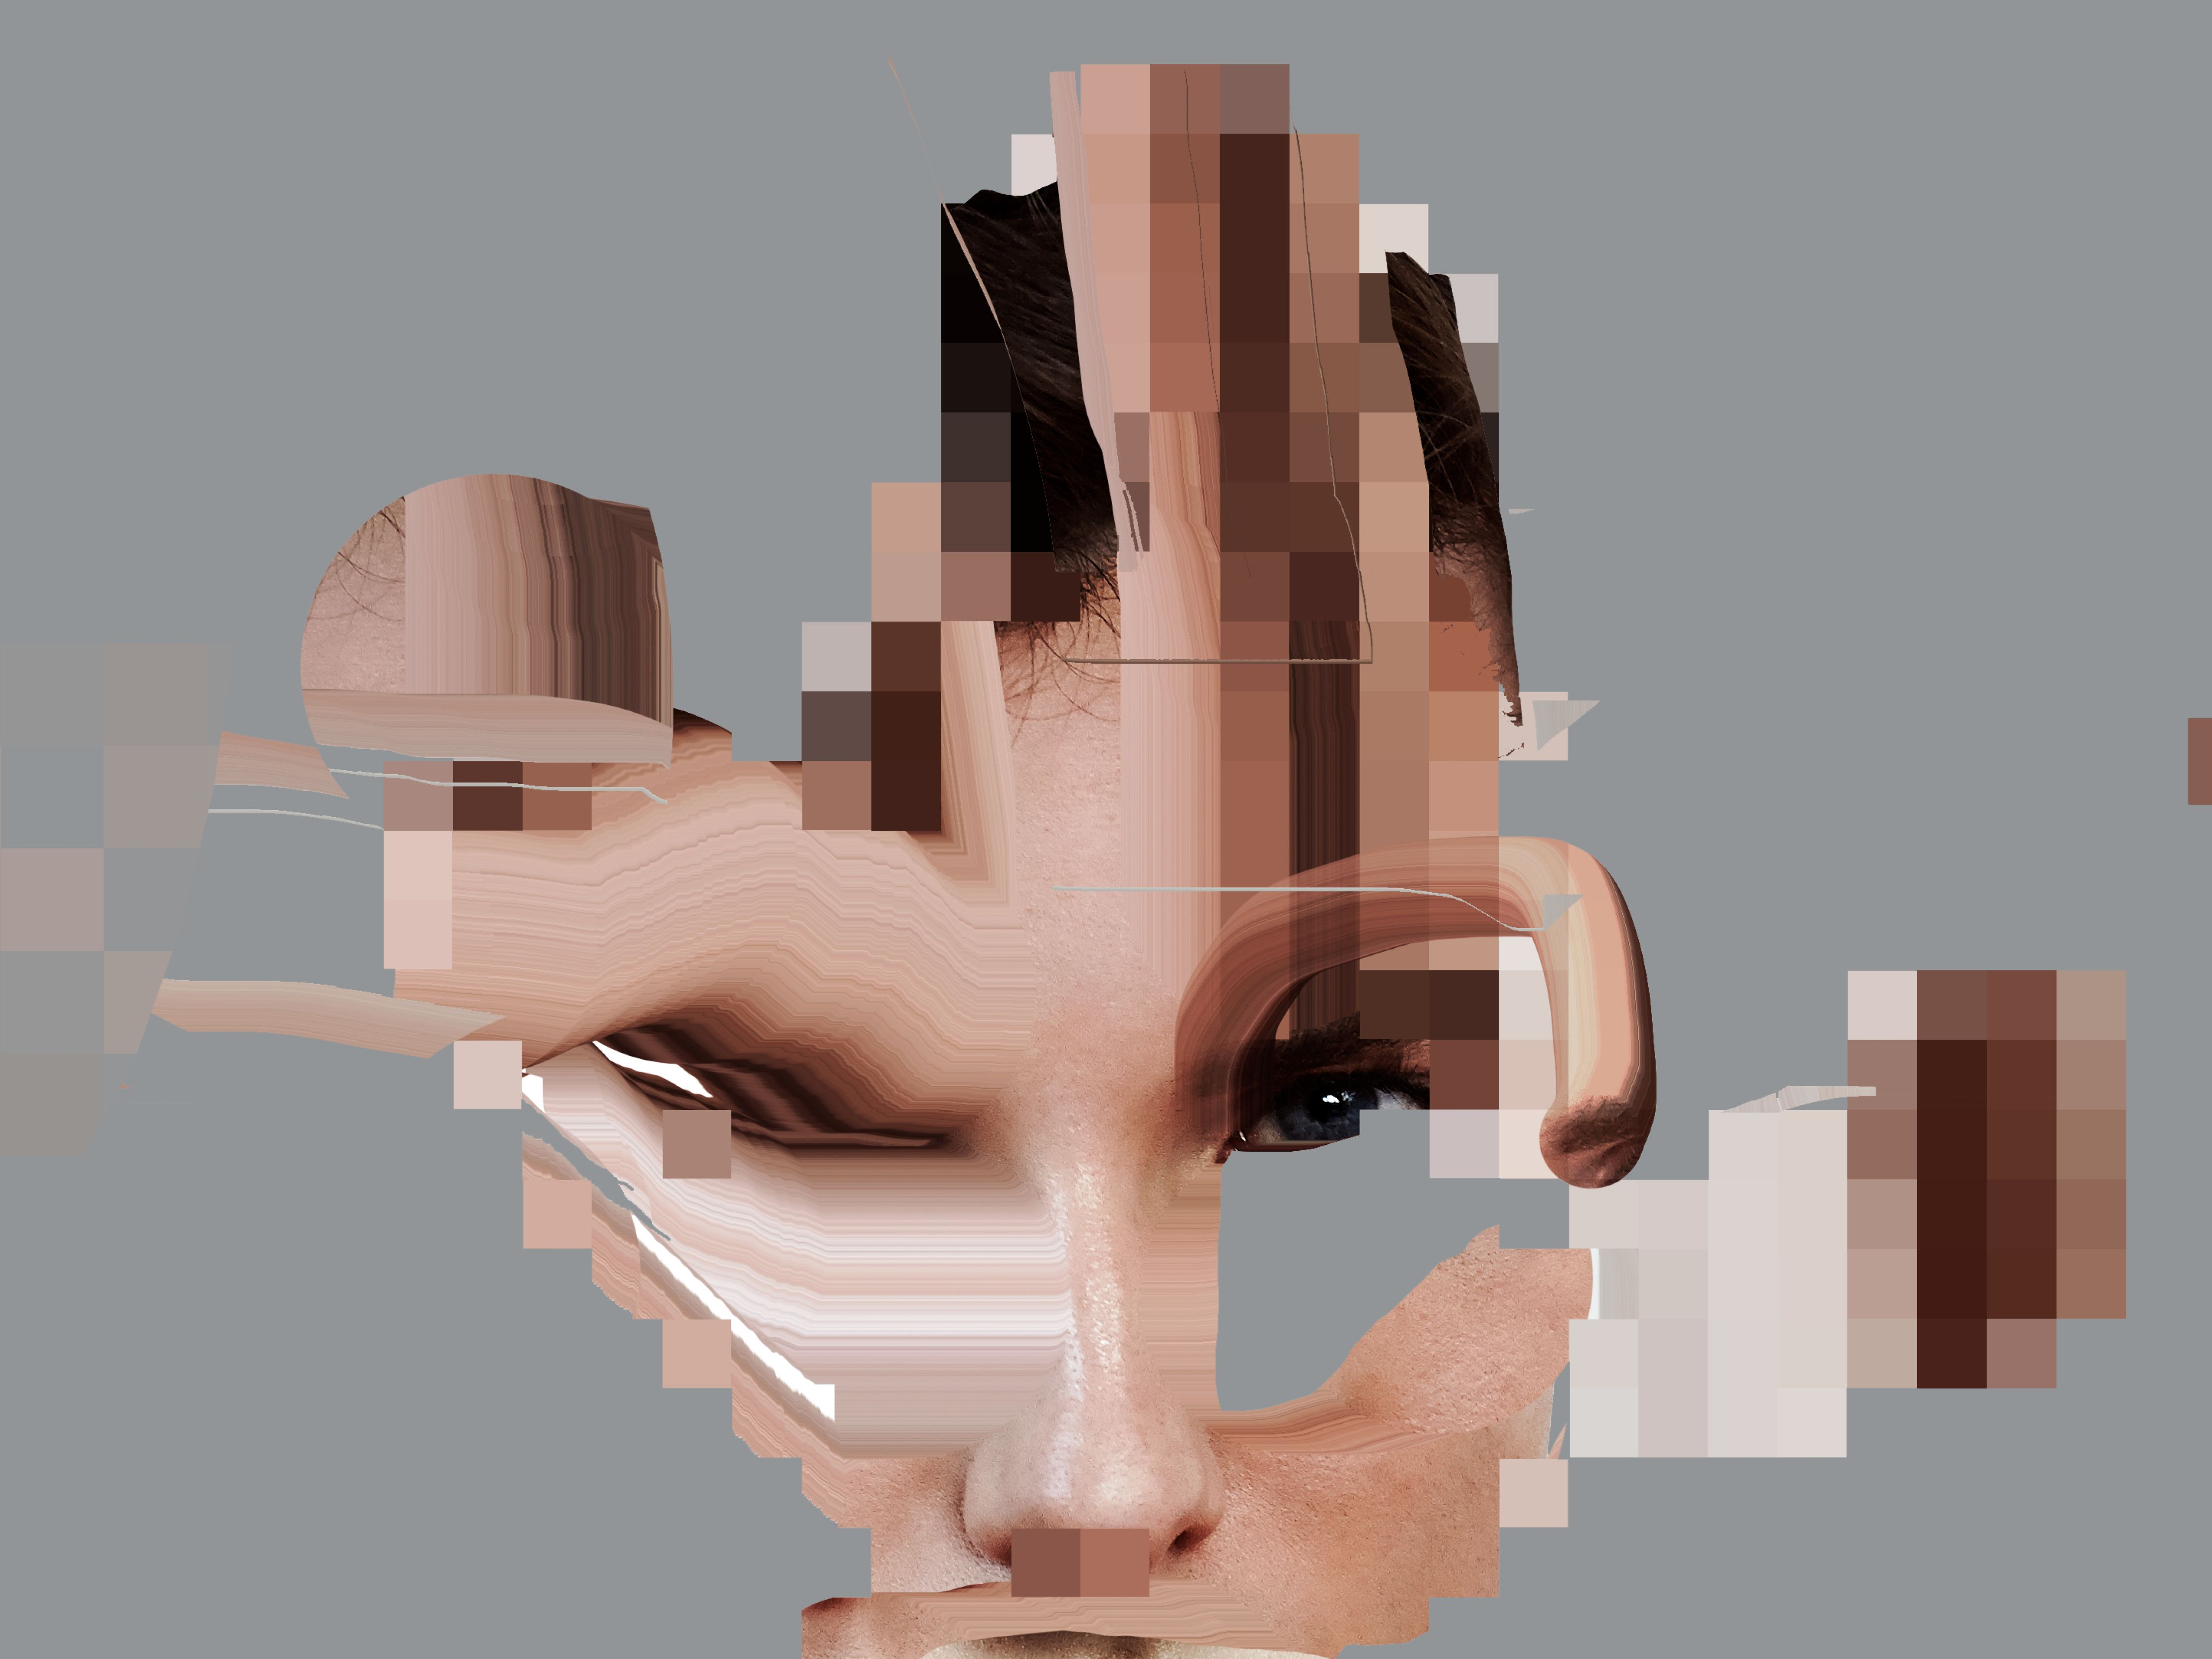 Distorted image of female model.